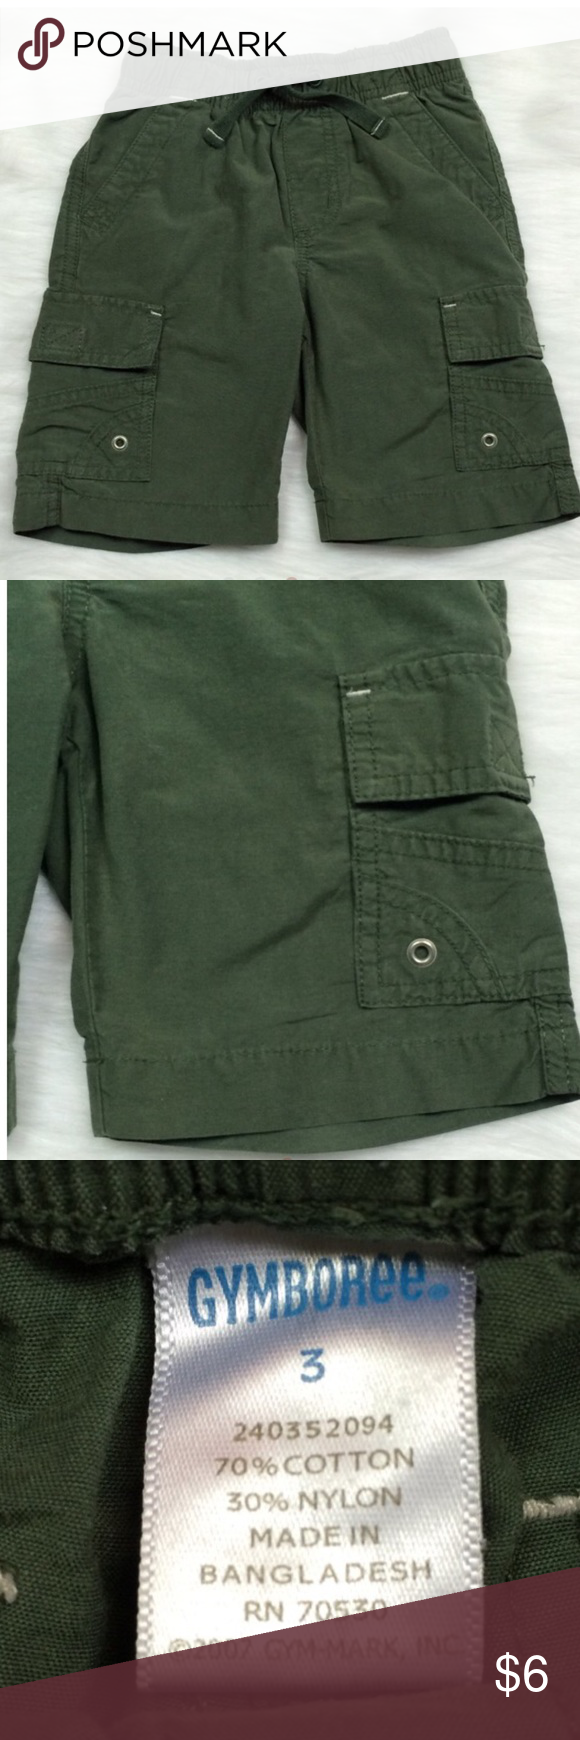 🚲 Gymboree Olive Cargo Shorts cotton/nylon. Easy pull-on style. Front and back pockets. Touch-close cargo pockets. Gymboree Bottoms Shorts